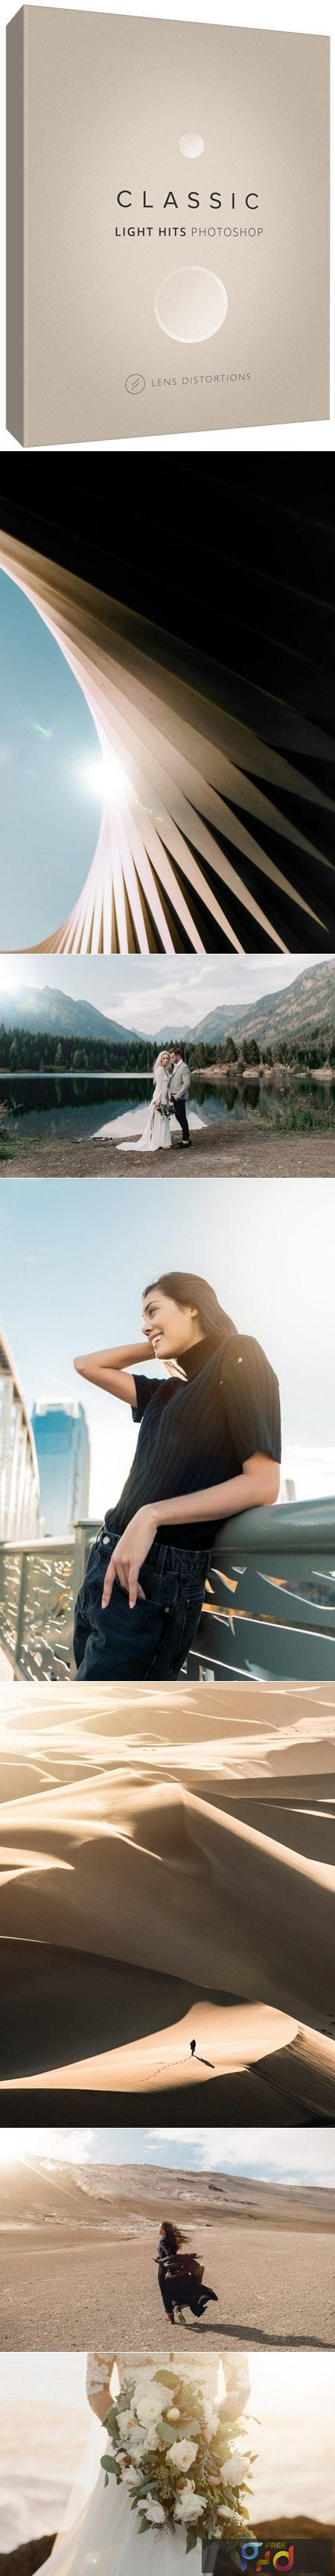 Lens Distortions - Classic Light Hits for Photoshop 1